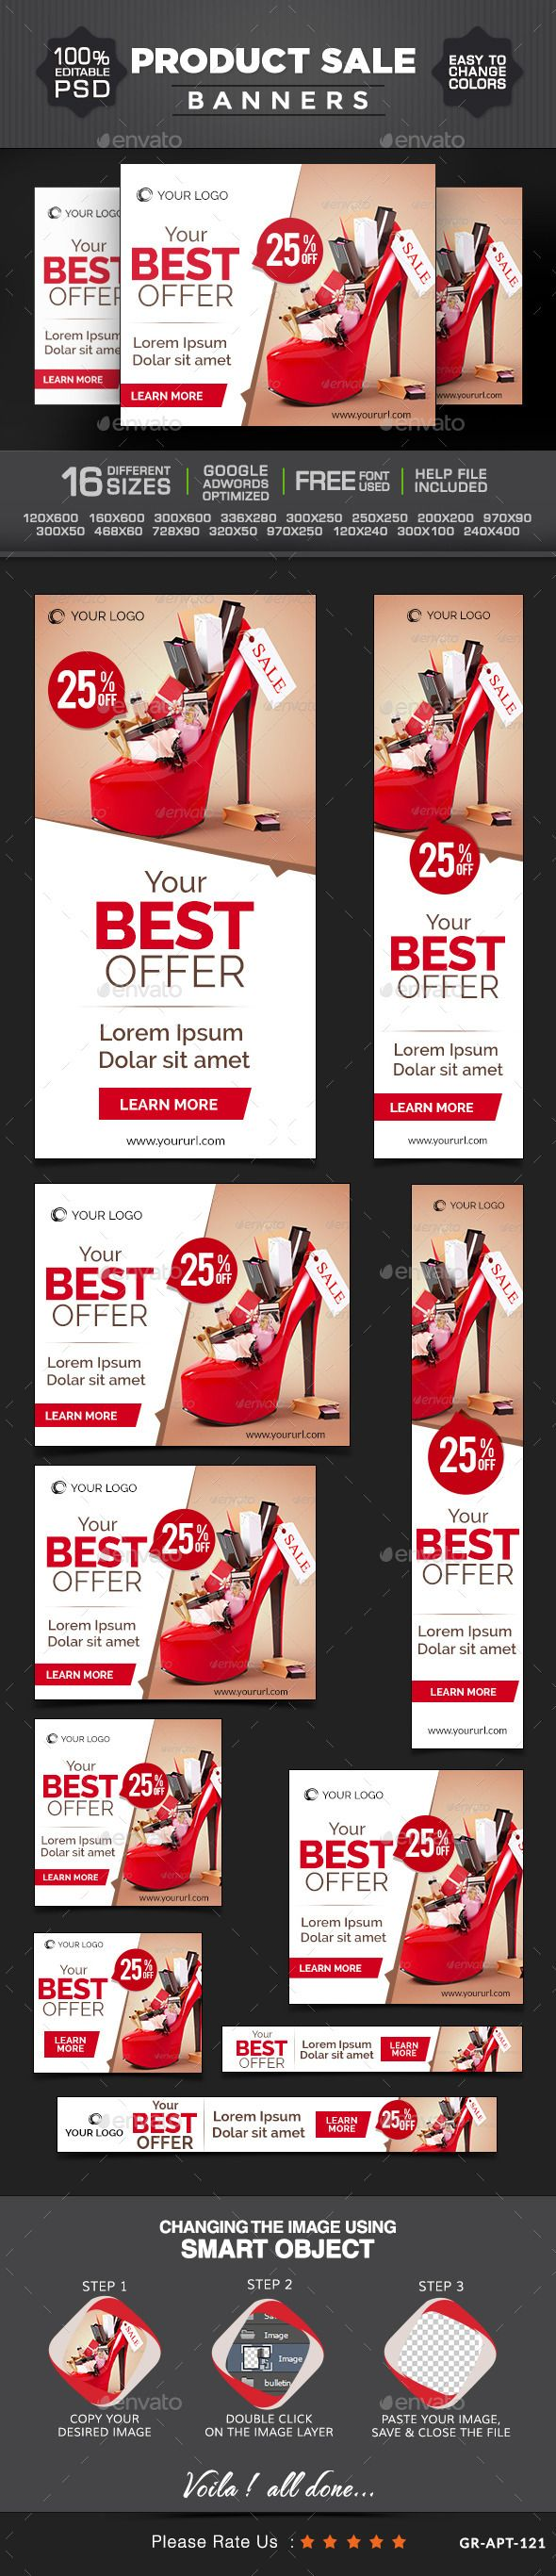 Product Sale Web Banners Template PSD | Buy and Download: http://graphicriver.net/item/product-sale-banners/9136233?WT.ac=category_thumb&WT.z_author=doto&ref=ksioks